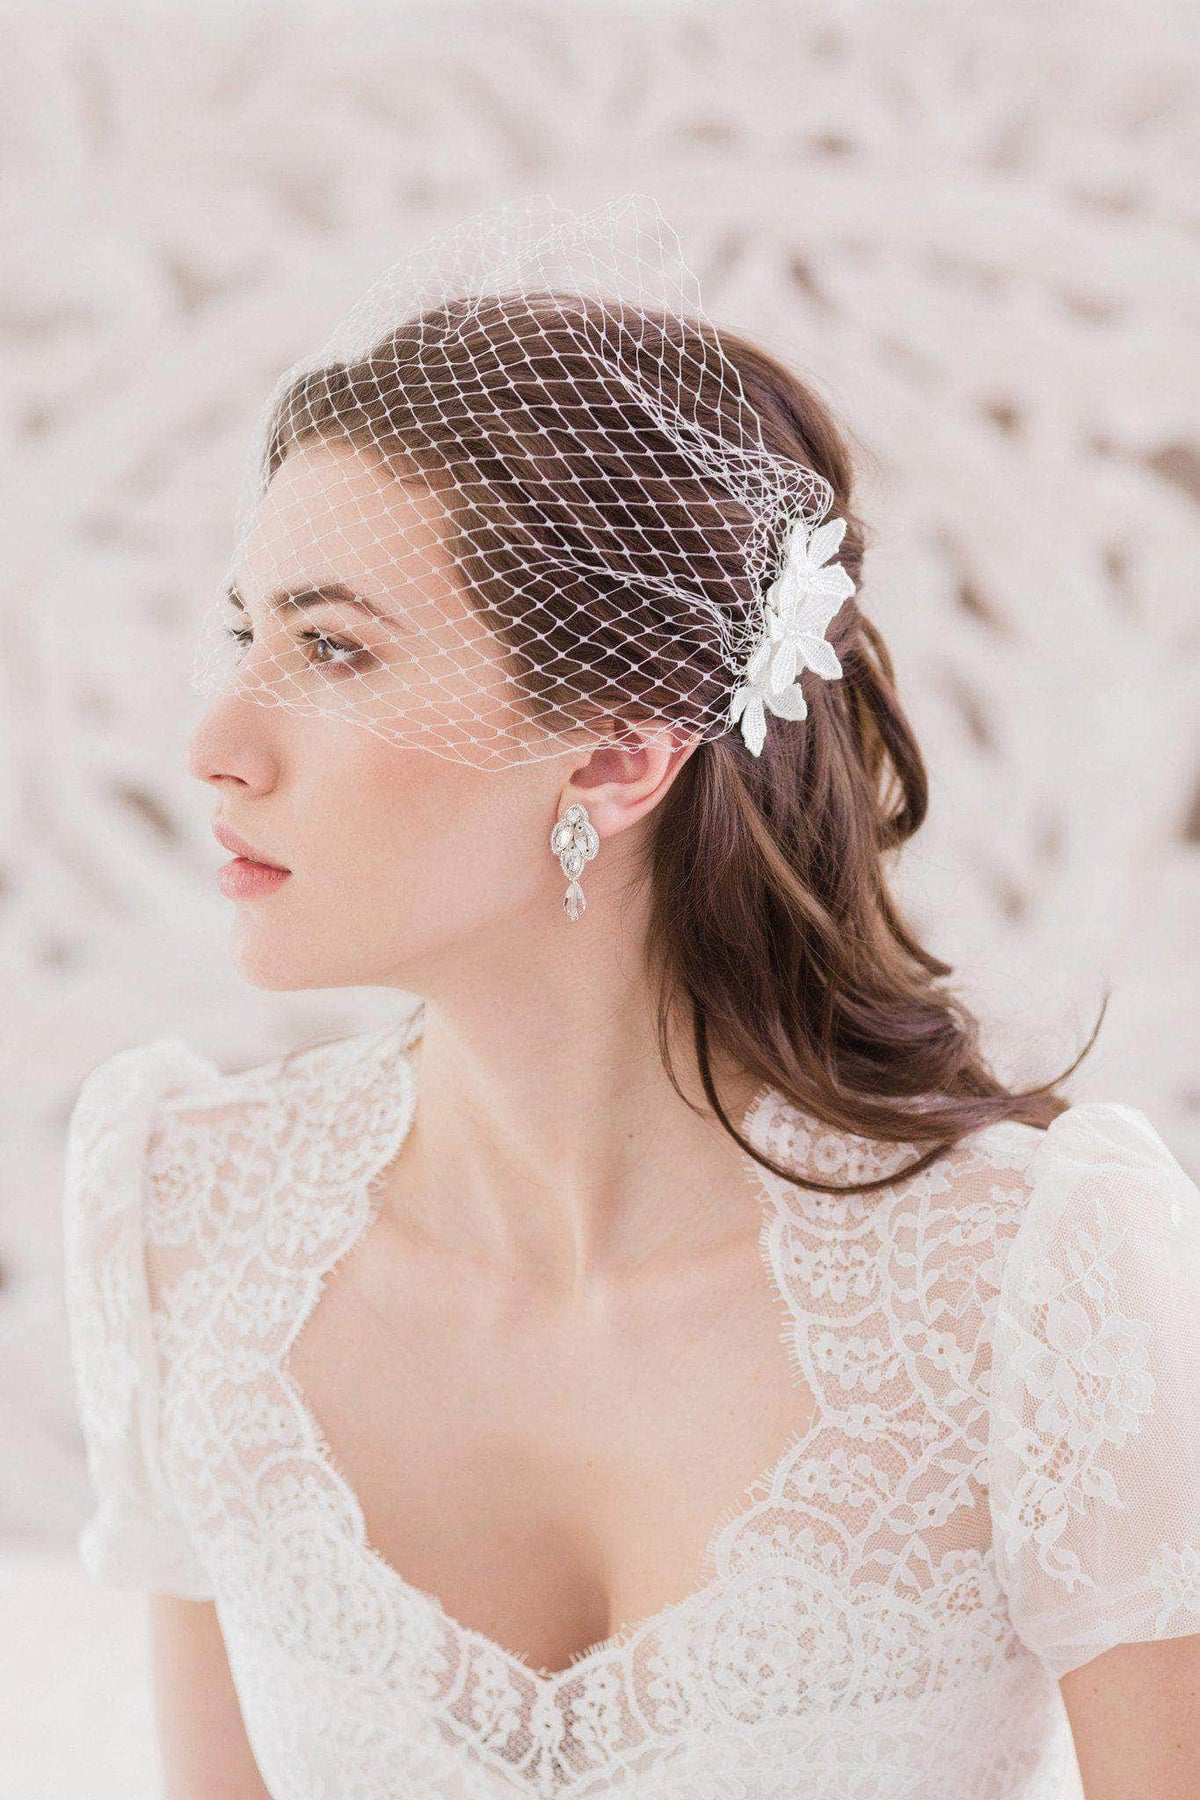 Wedding Veil Embellished bandeau wedding veil of Russian net - 'Alexandrova'